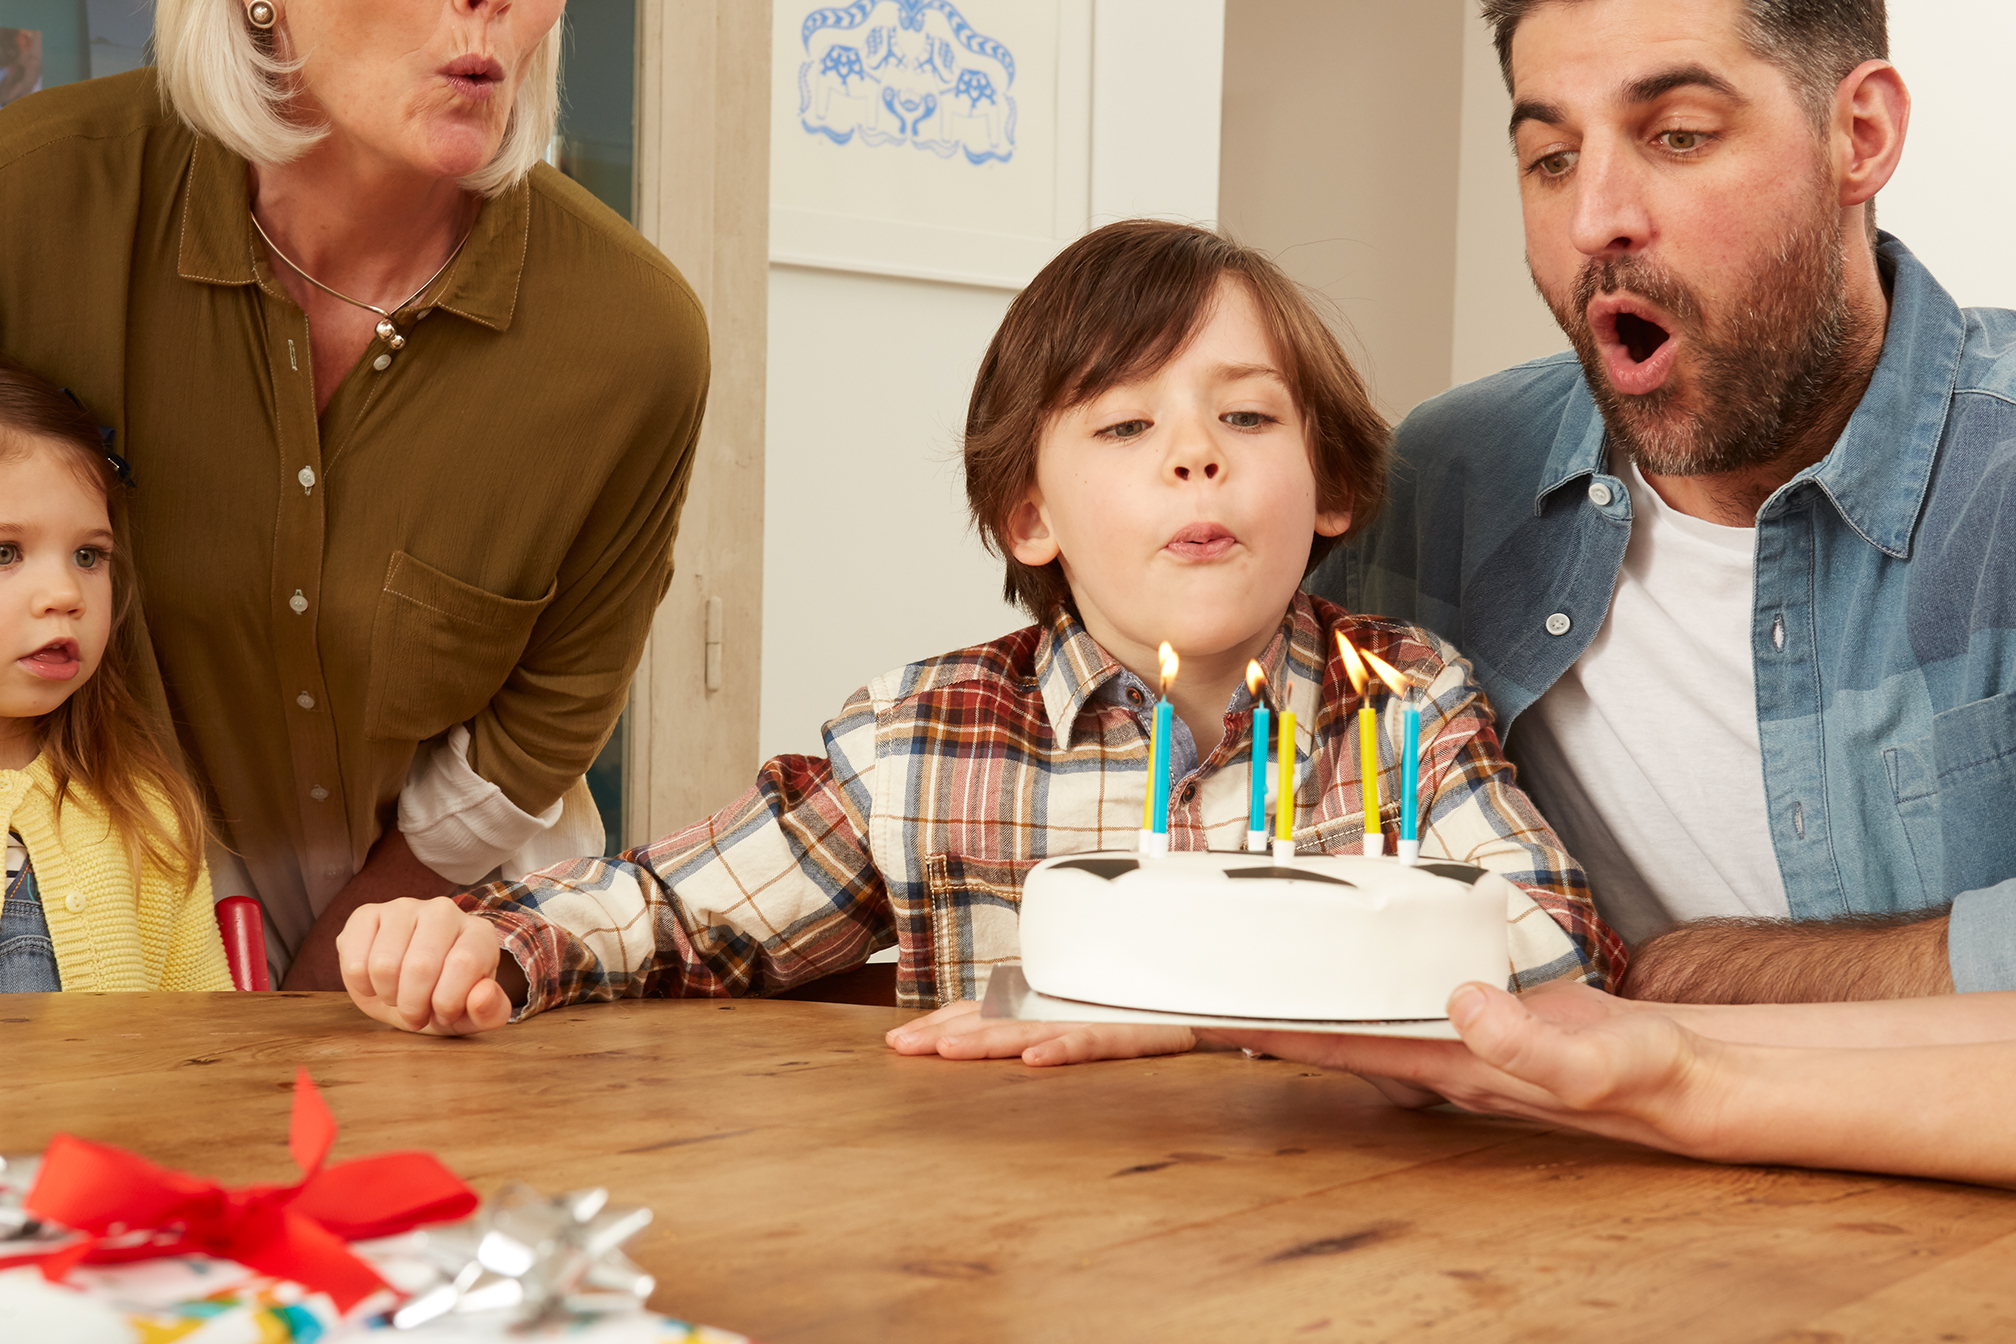 Family celebrating birthday of young son